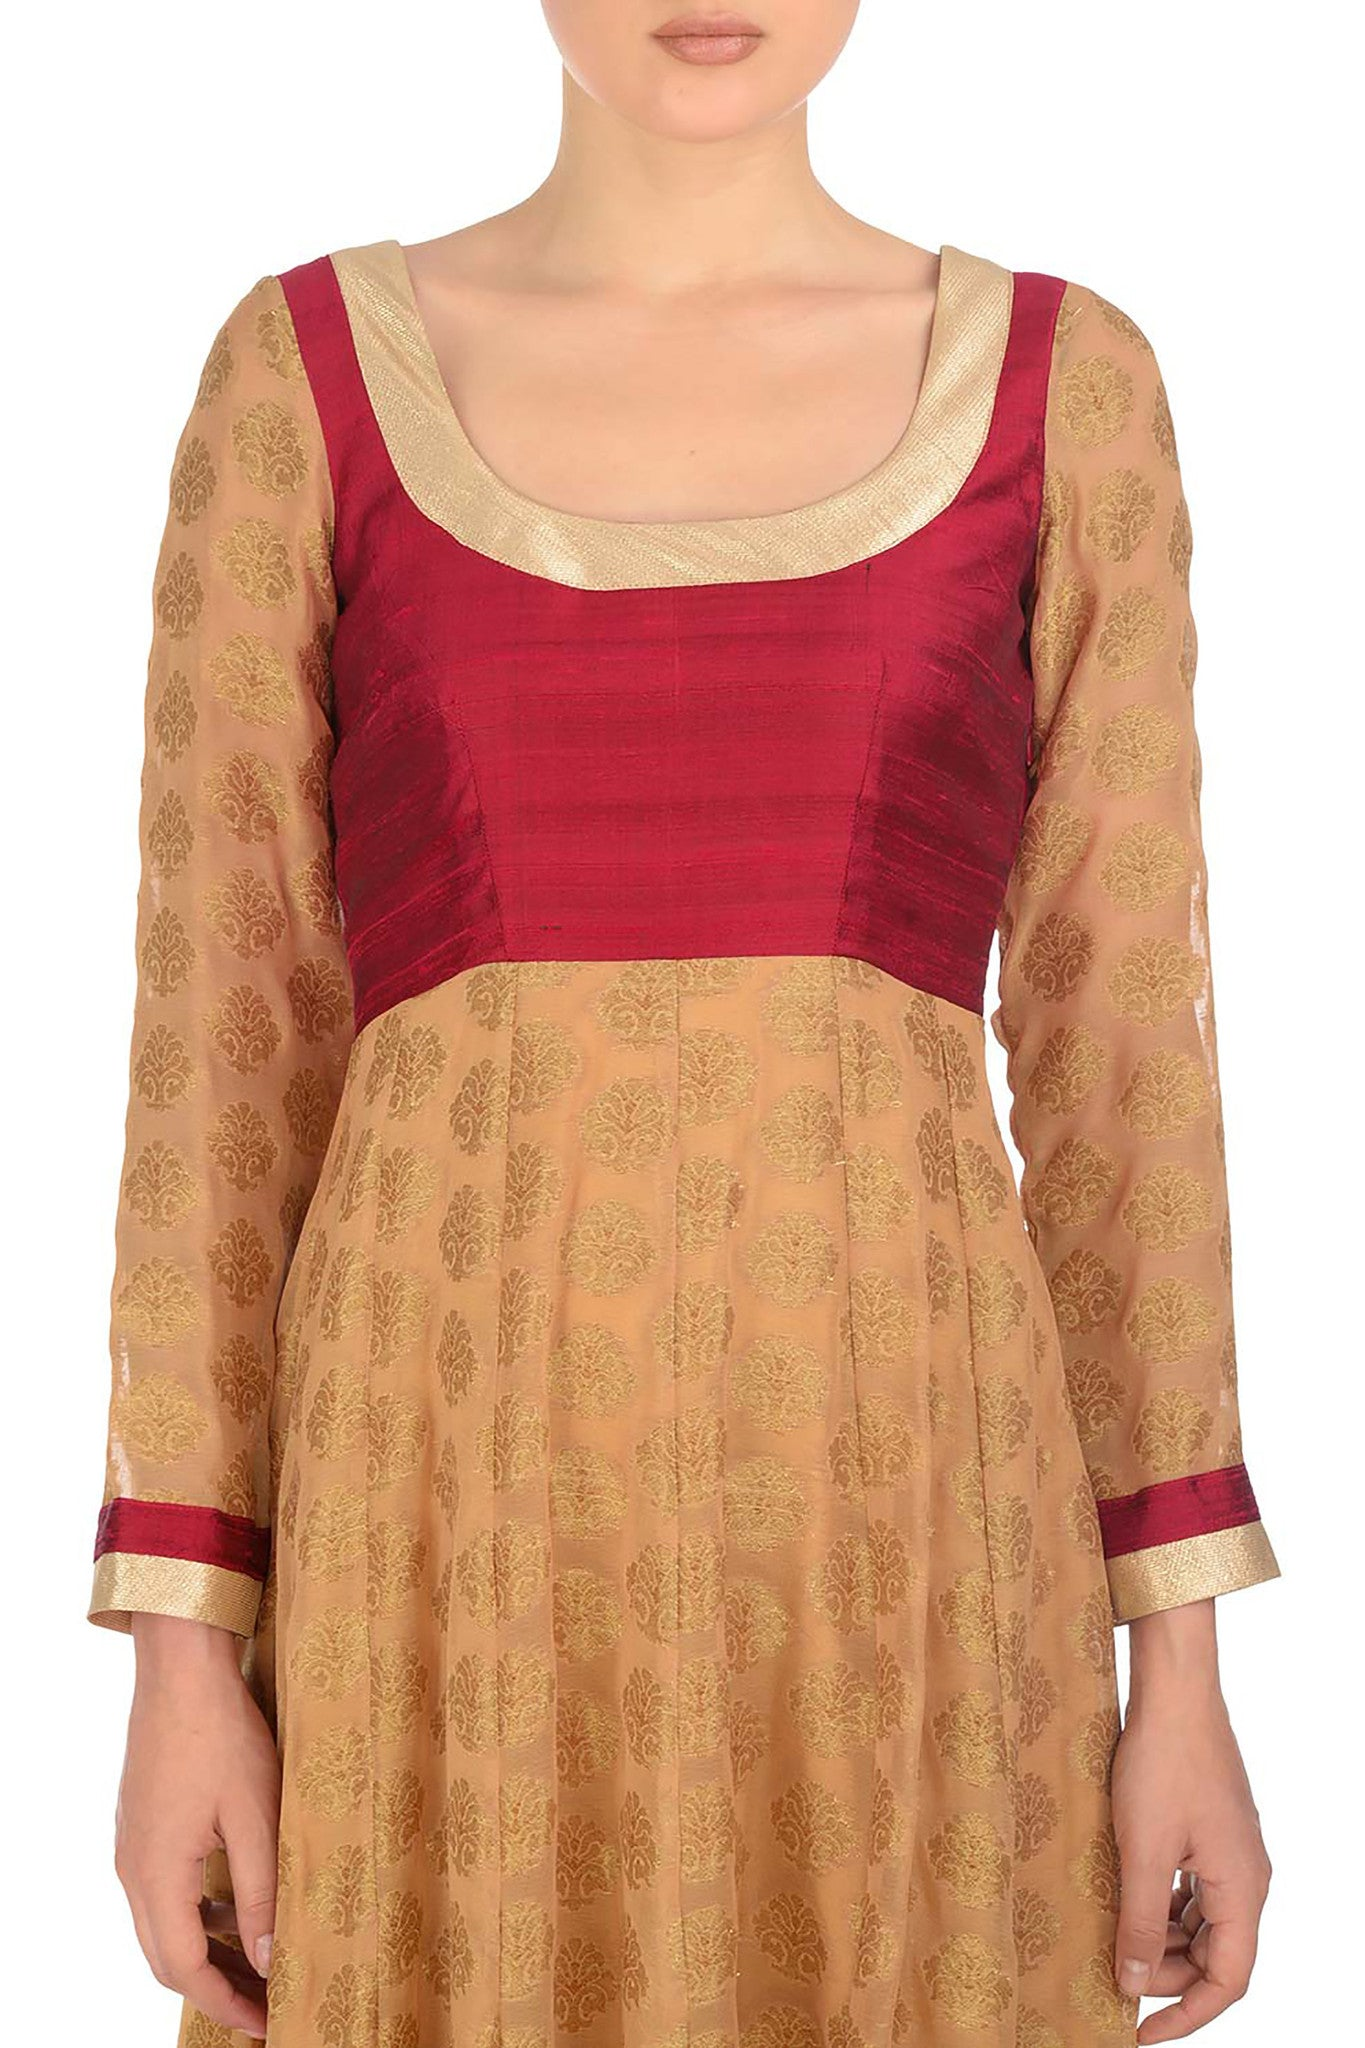 Red and Gold Anarkali Close Up